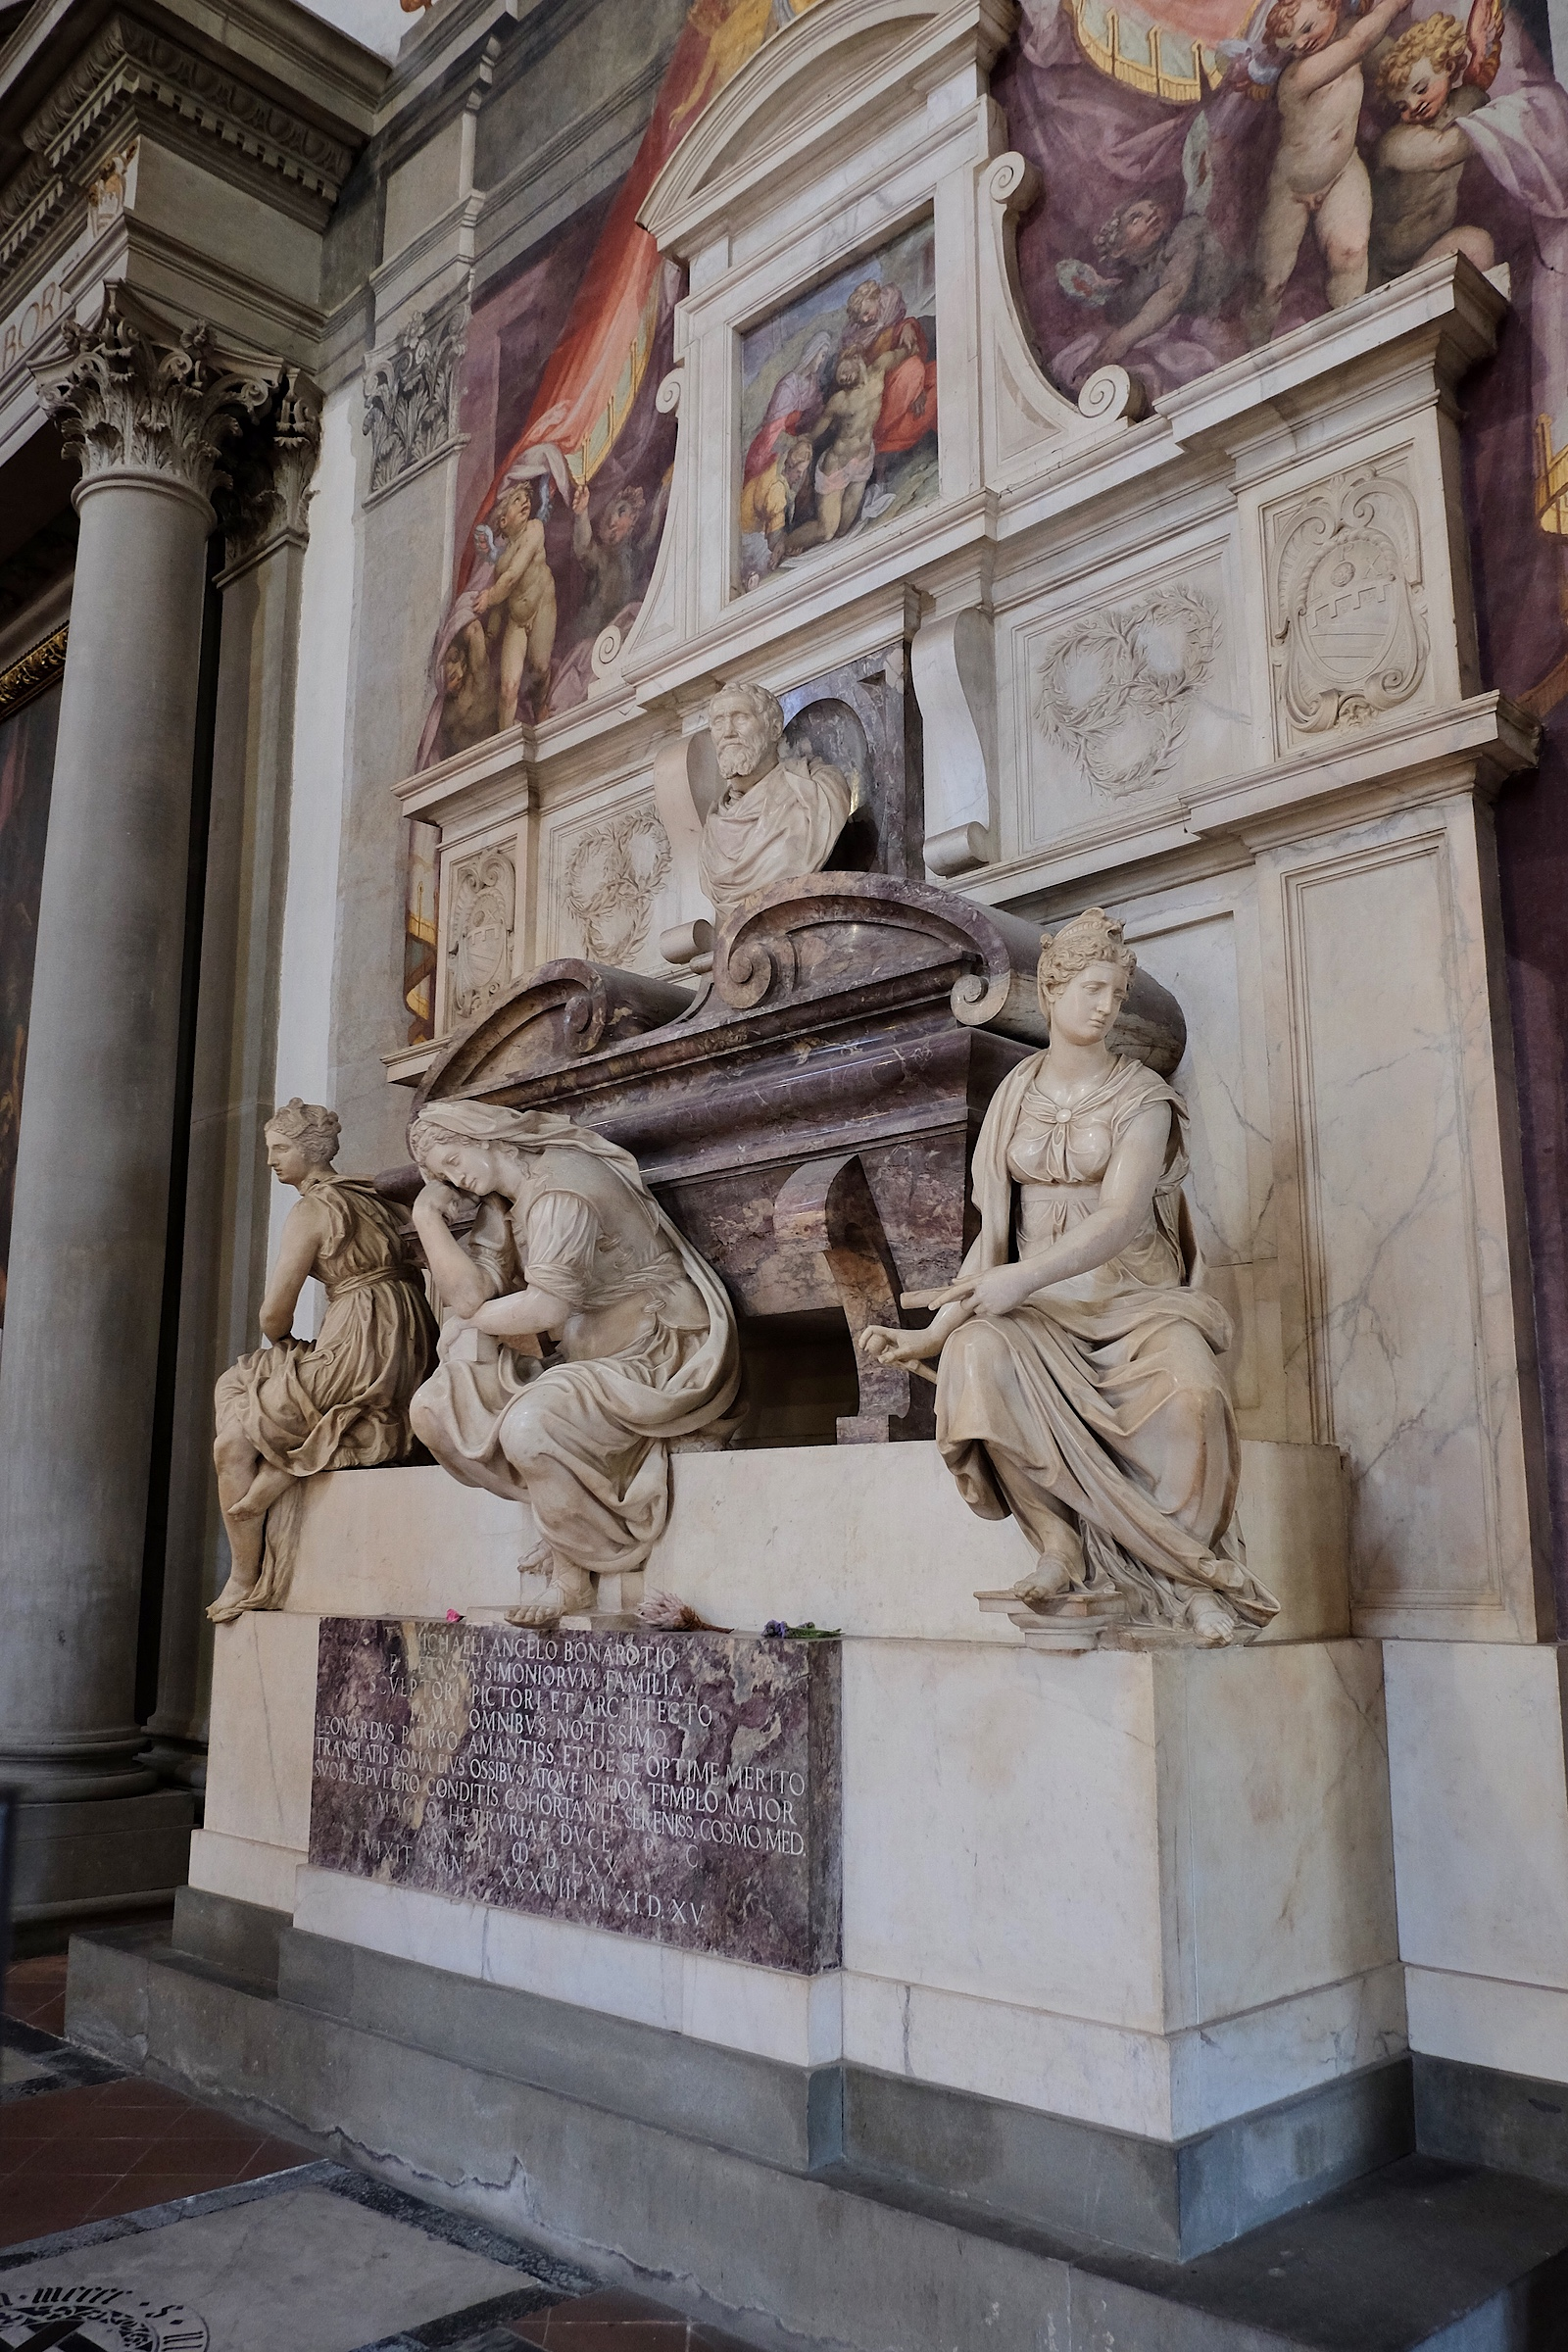 The tomb of Michelangelo in Santa Croce.